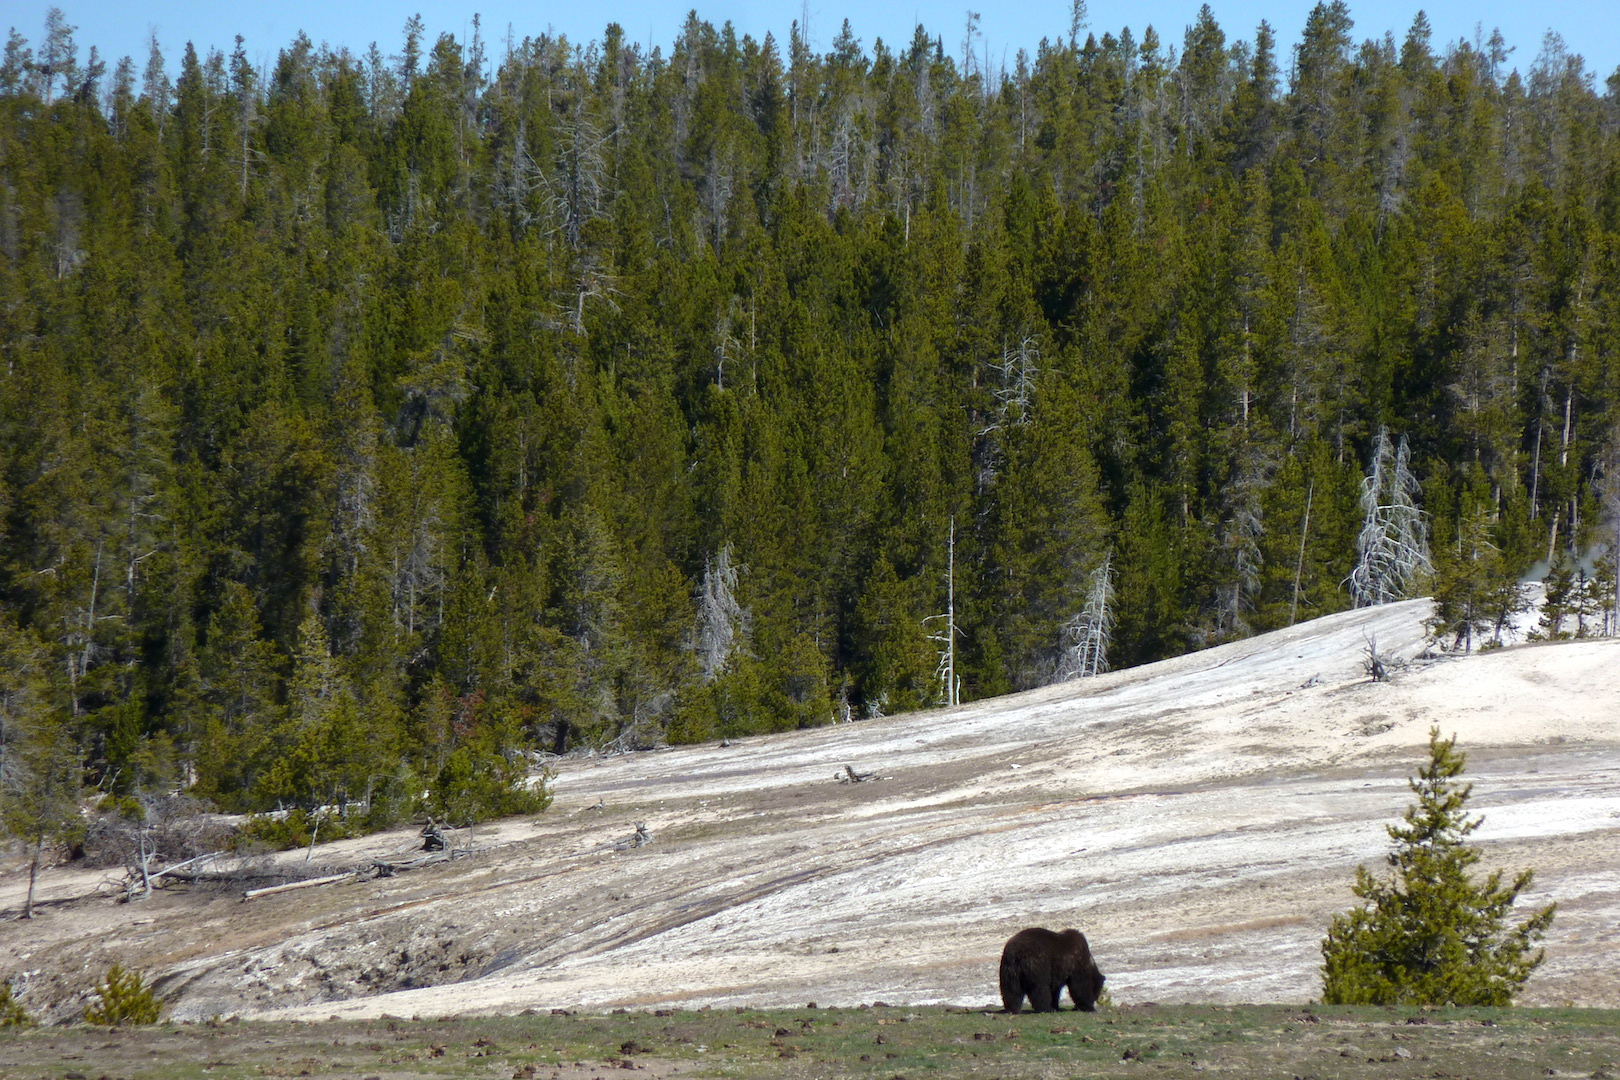 bear grazing on vegetation with travertine and forest in background